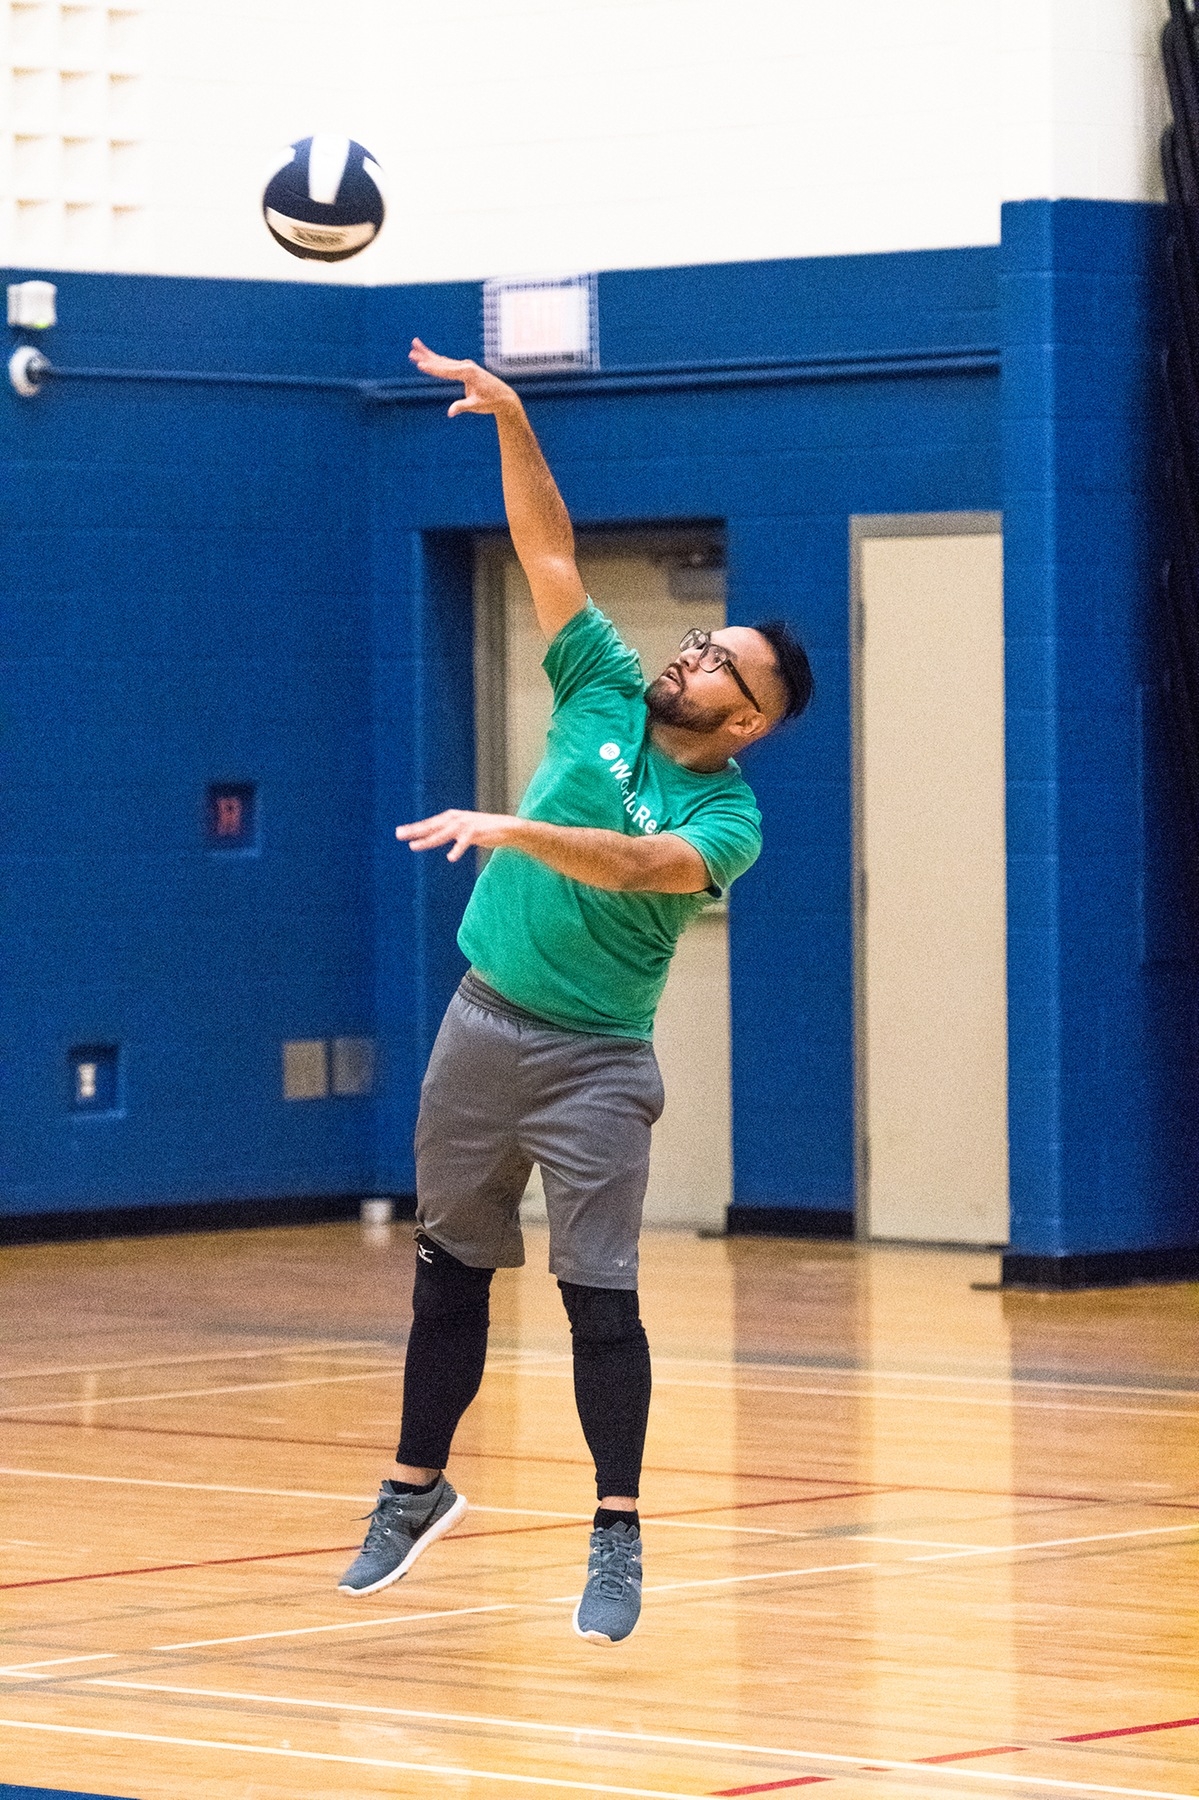 PHOTOS: Winter 2017 Intramural Volleyball